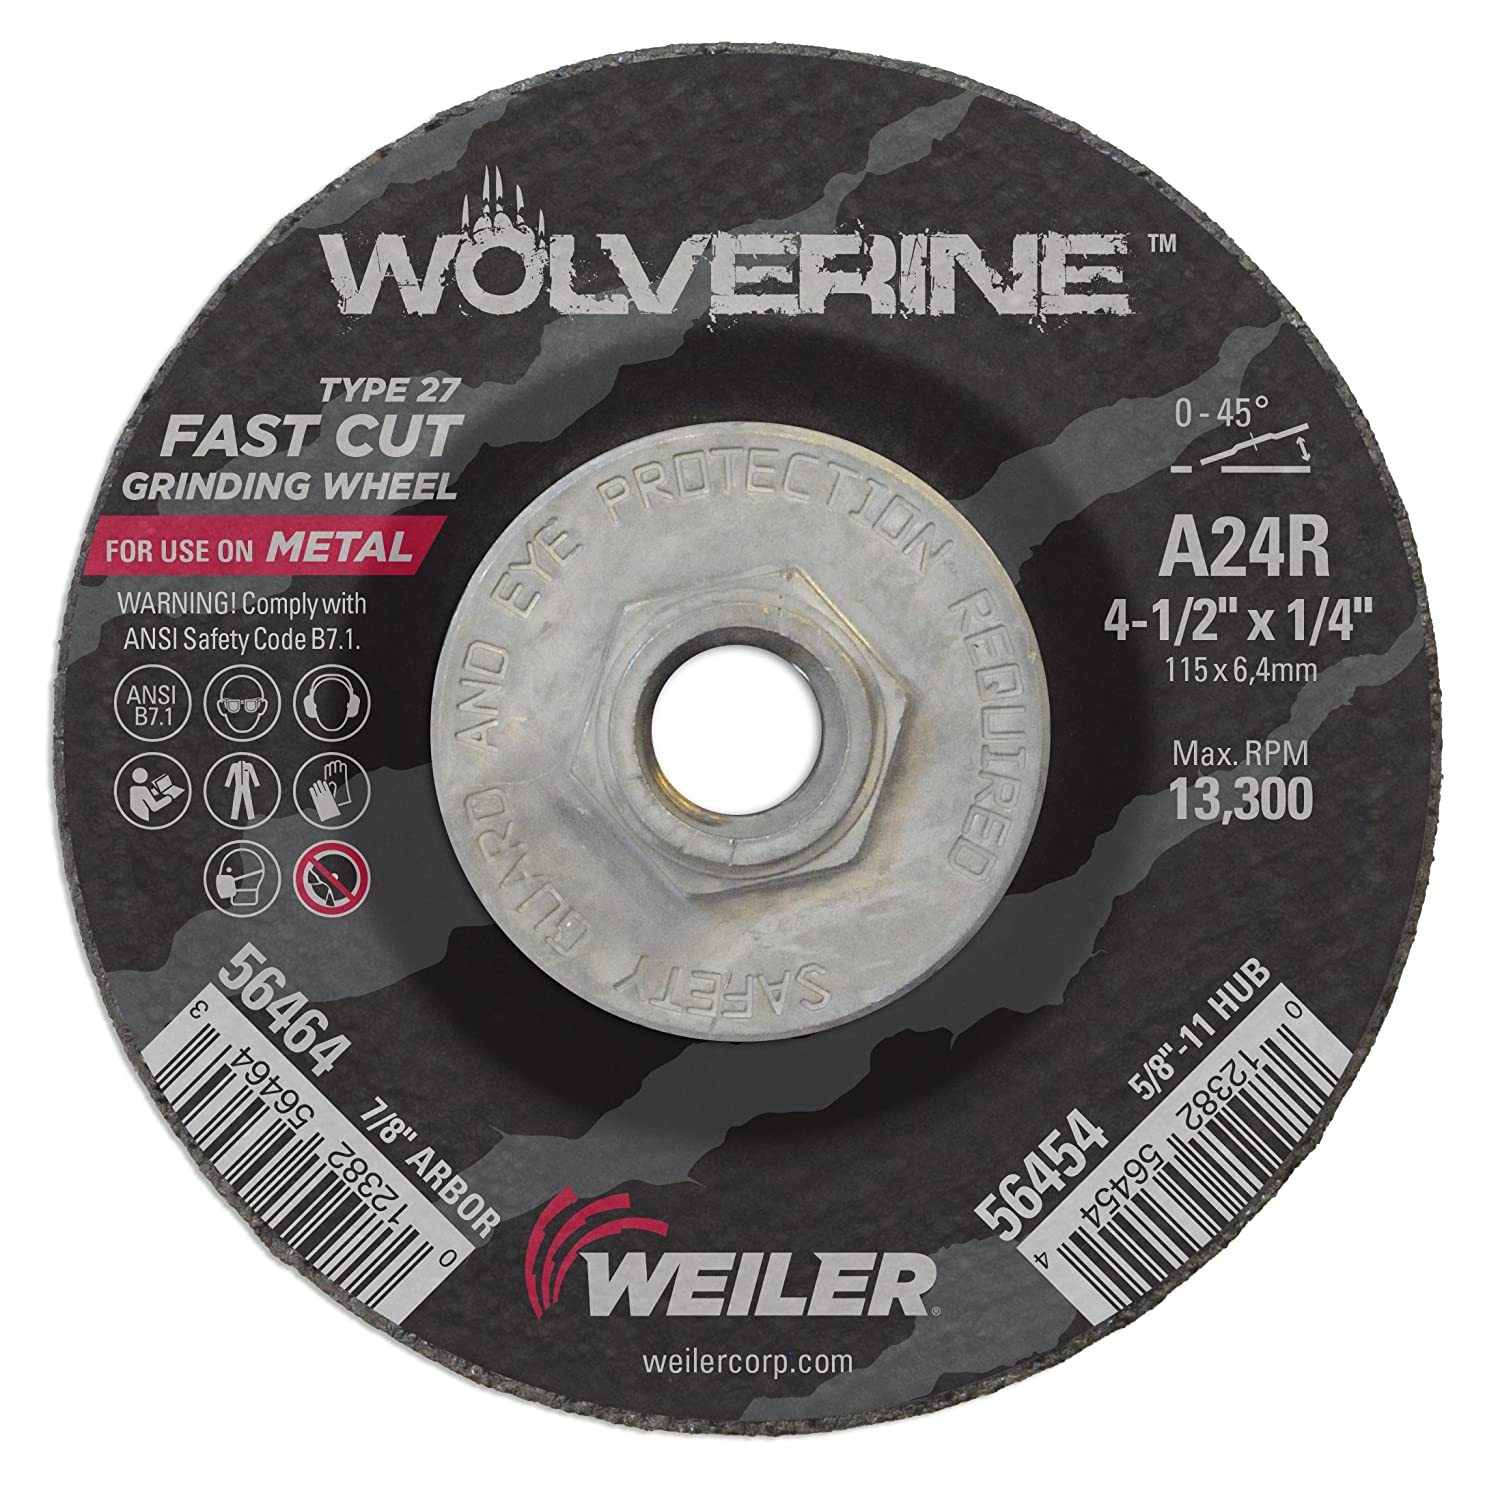 A24R Pack of 10 5//8-11 UNC Nut Weiler 56454 4-1//2 x 1//4 Wolverine Type 27 Grinding Wheel